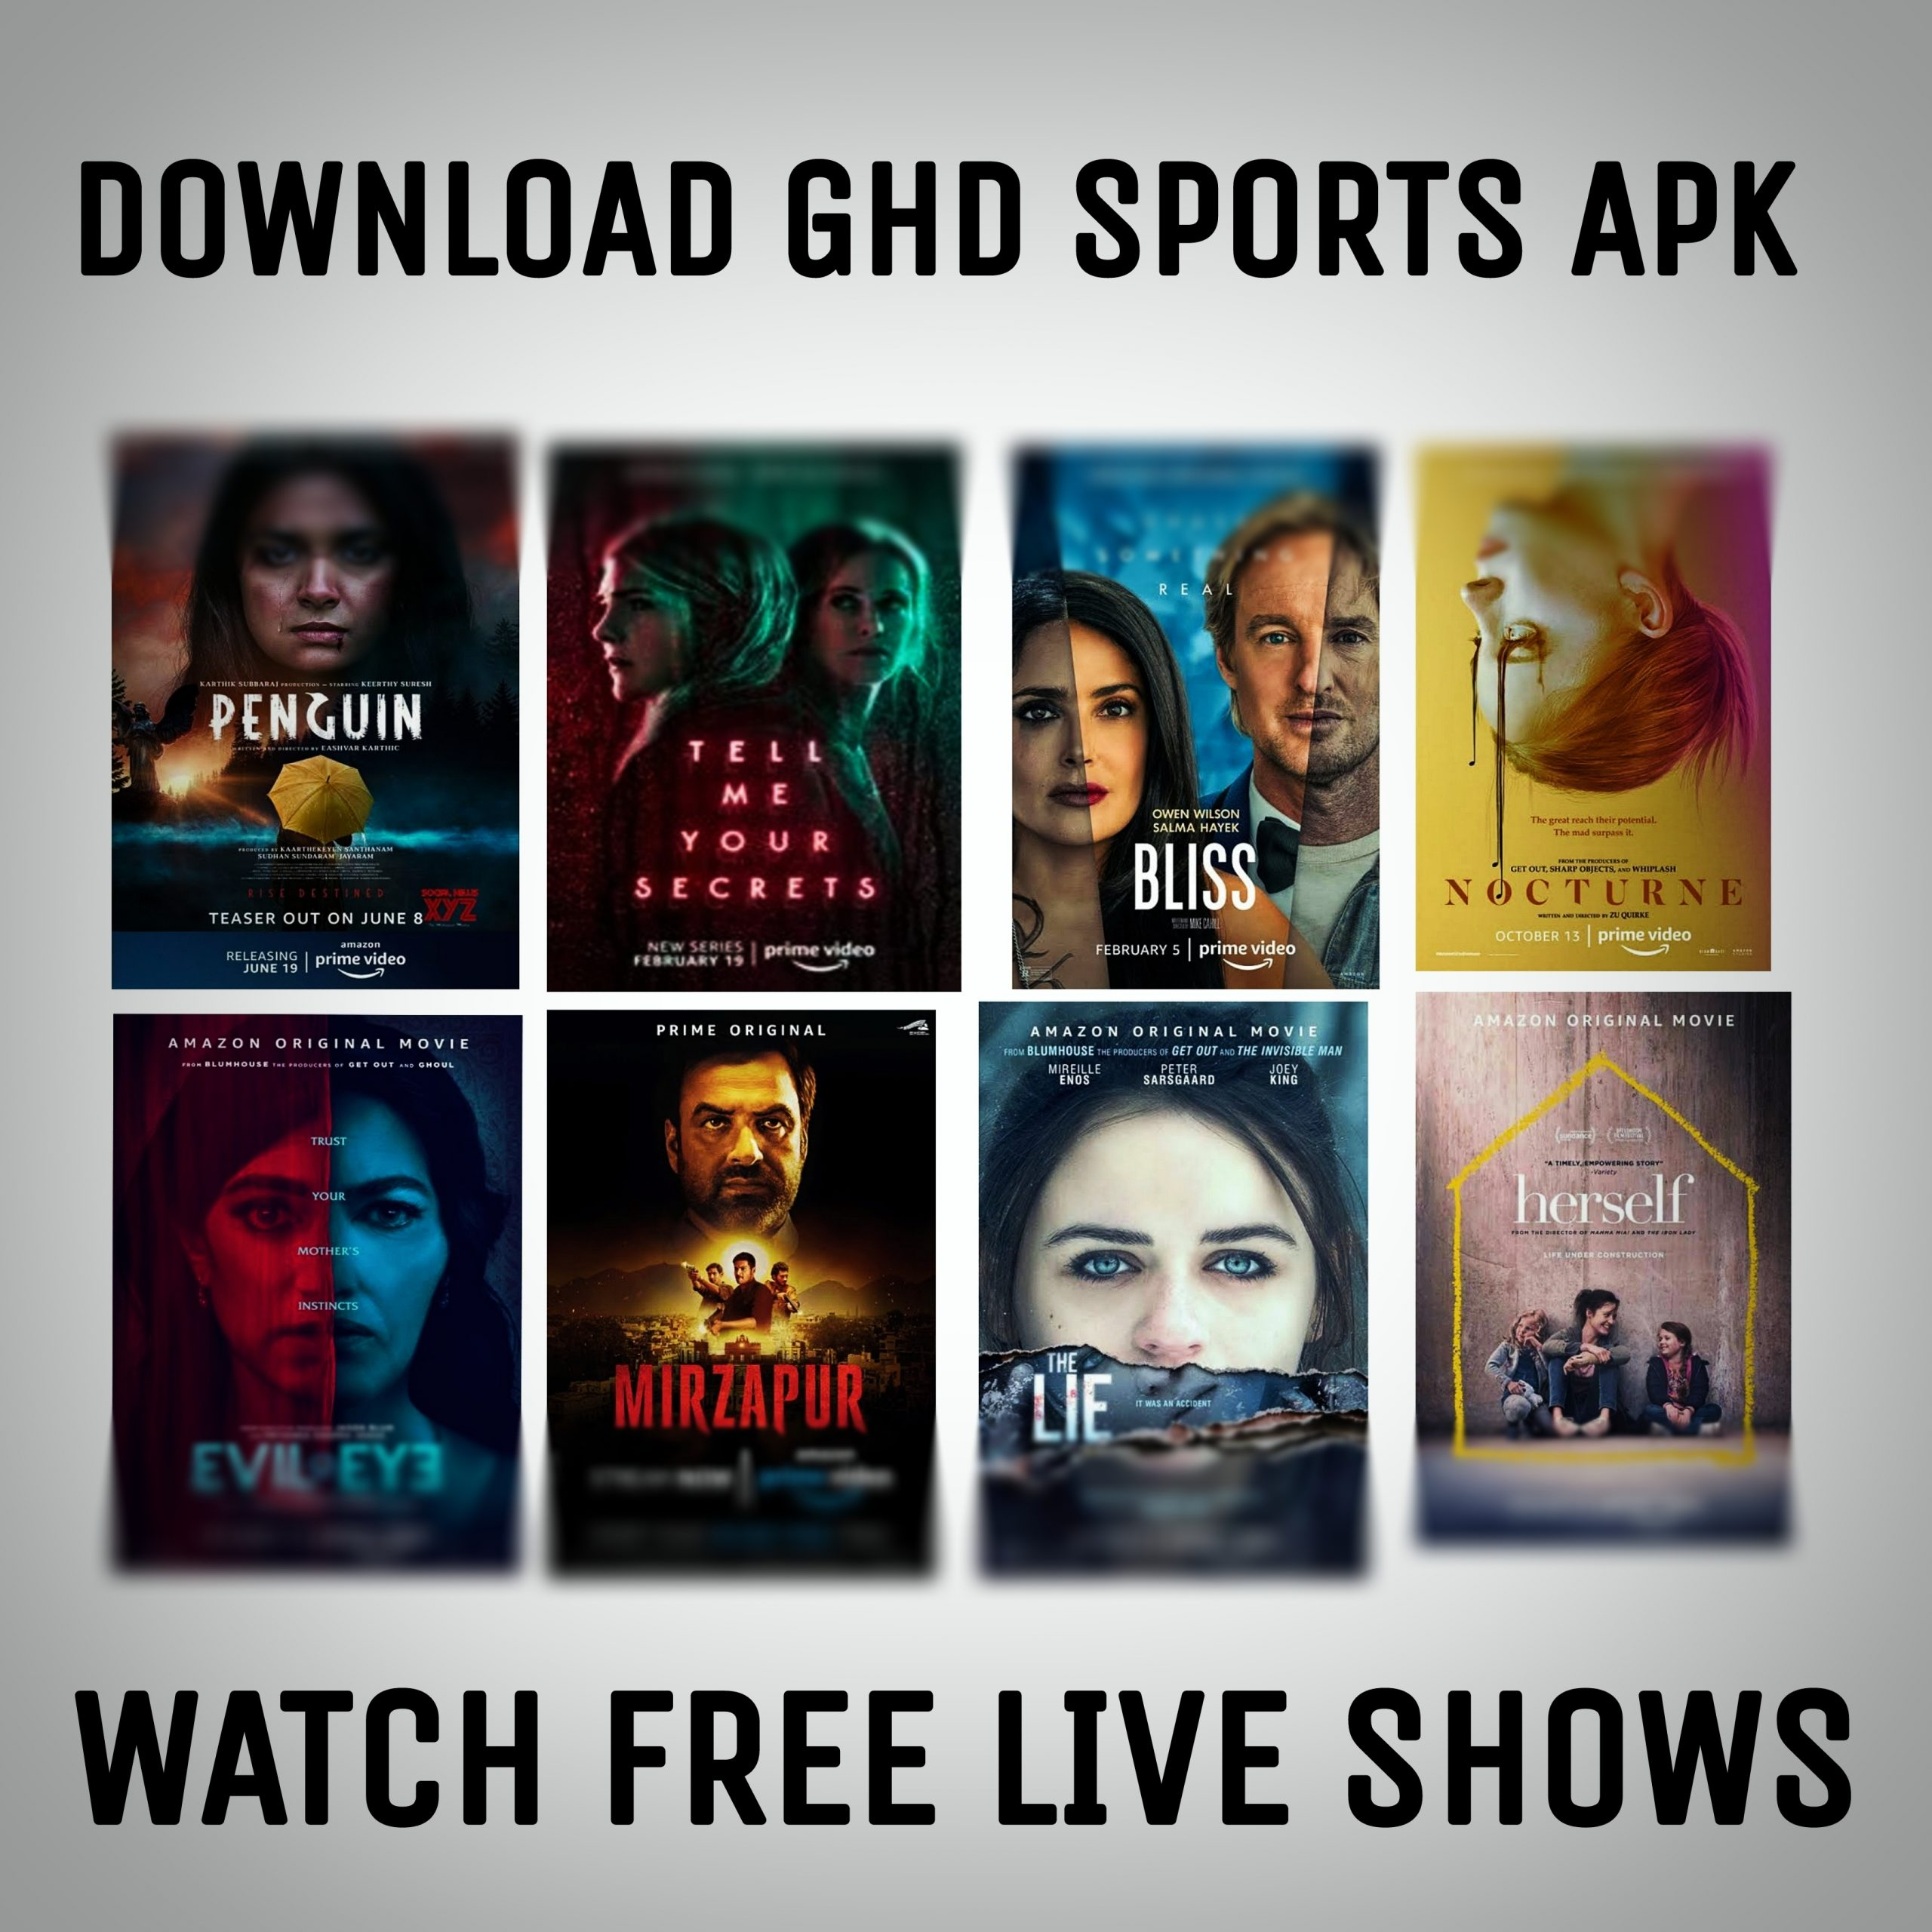 Download GHD sports Apk download & Install